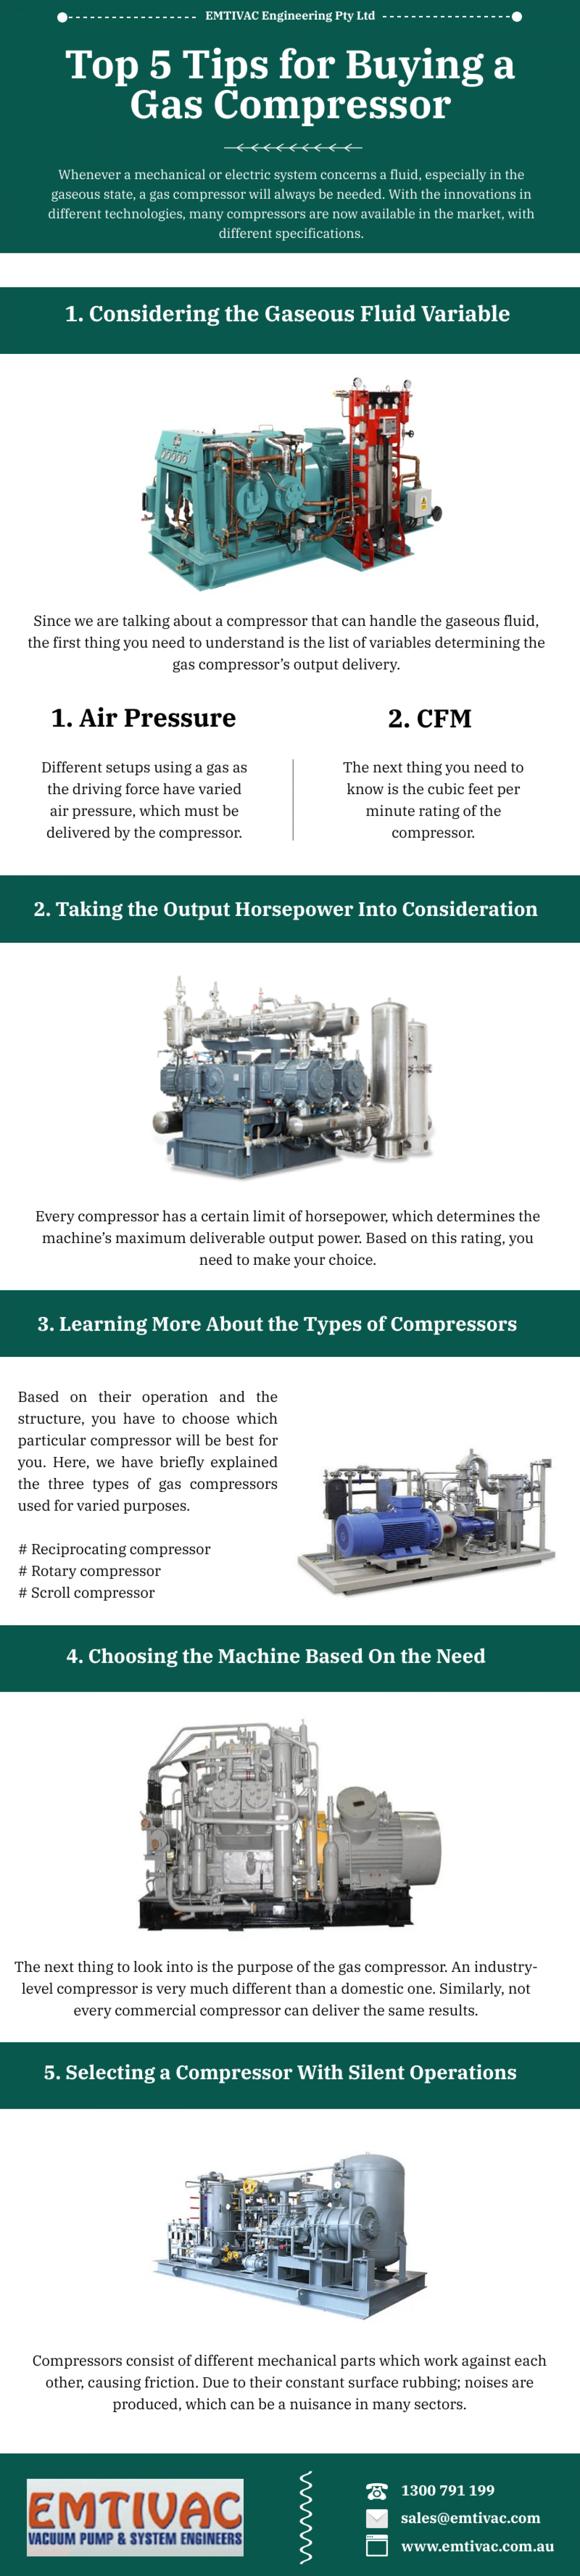 Top 5 Tips for Buying a Gas Compressor Infographic